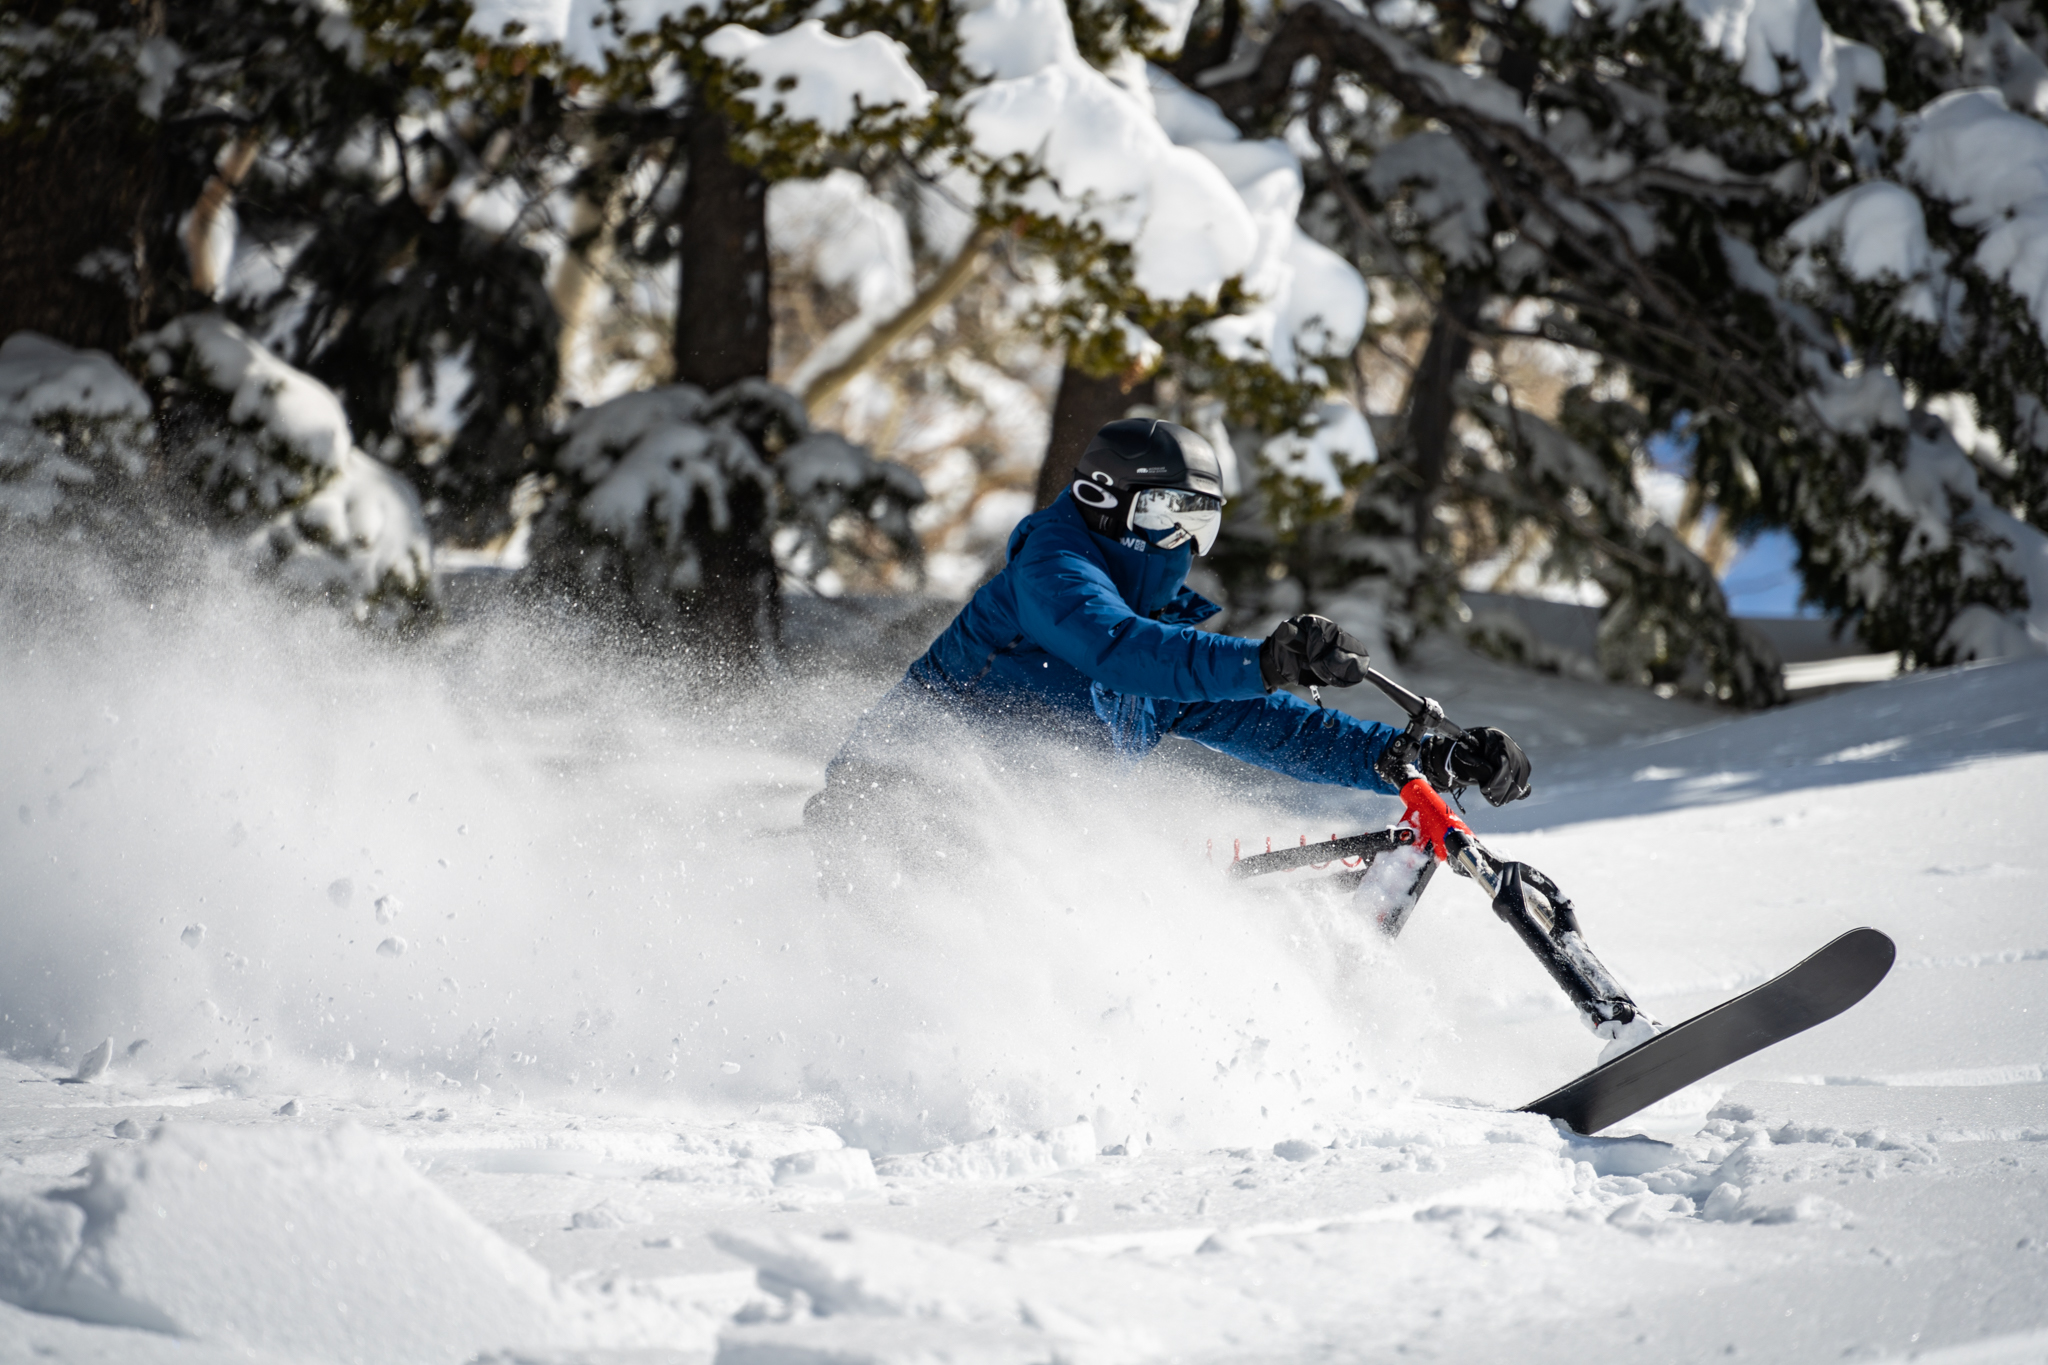 SNO-GO Cofounder Chase Wagstaff finds powder bliss